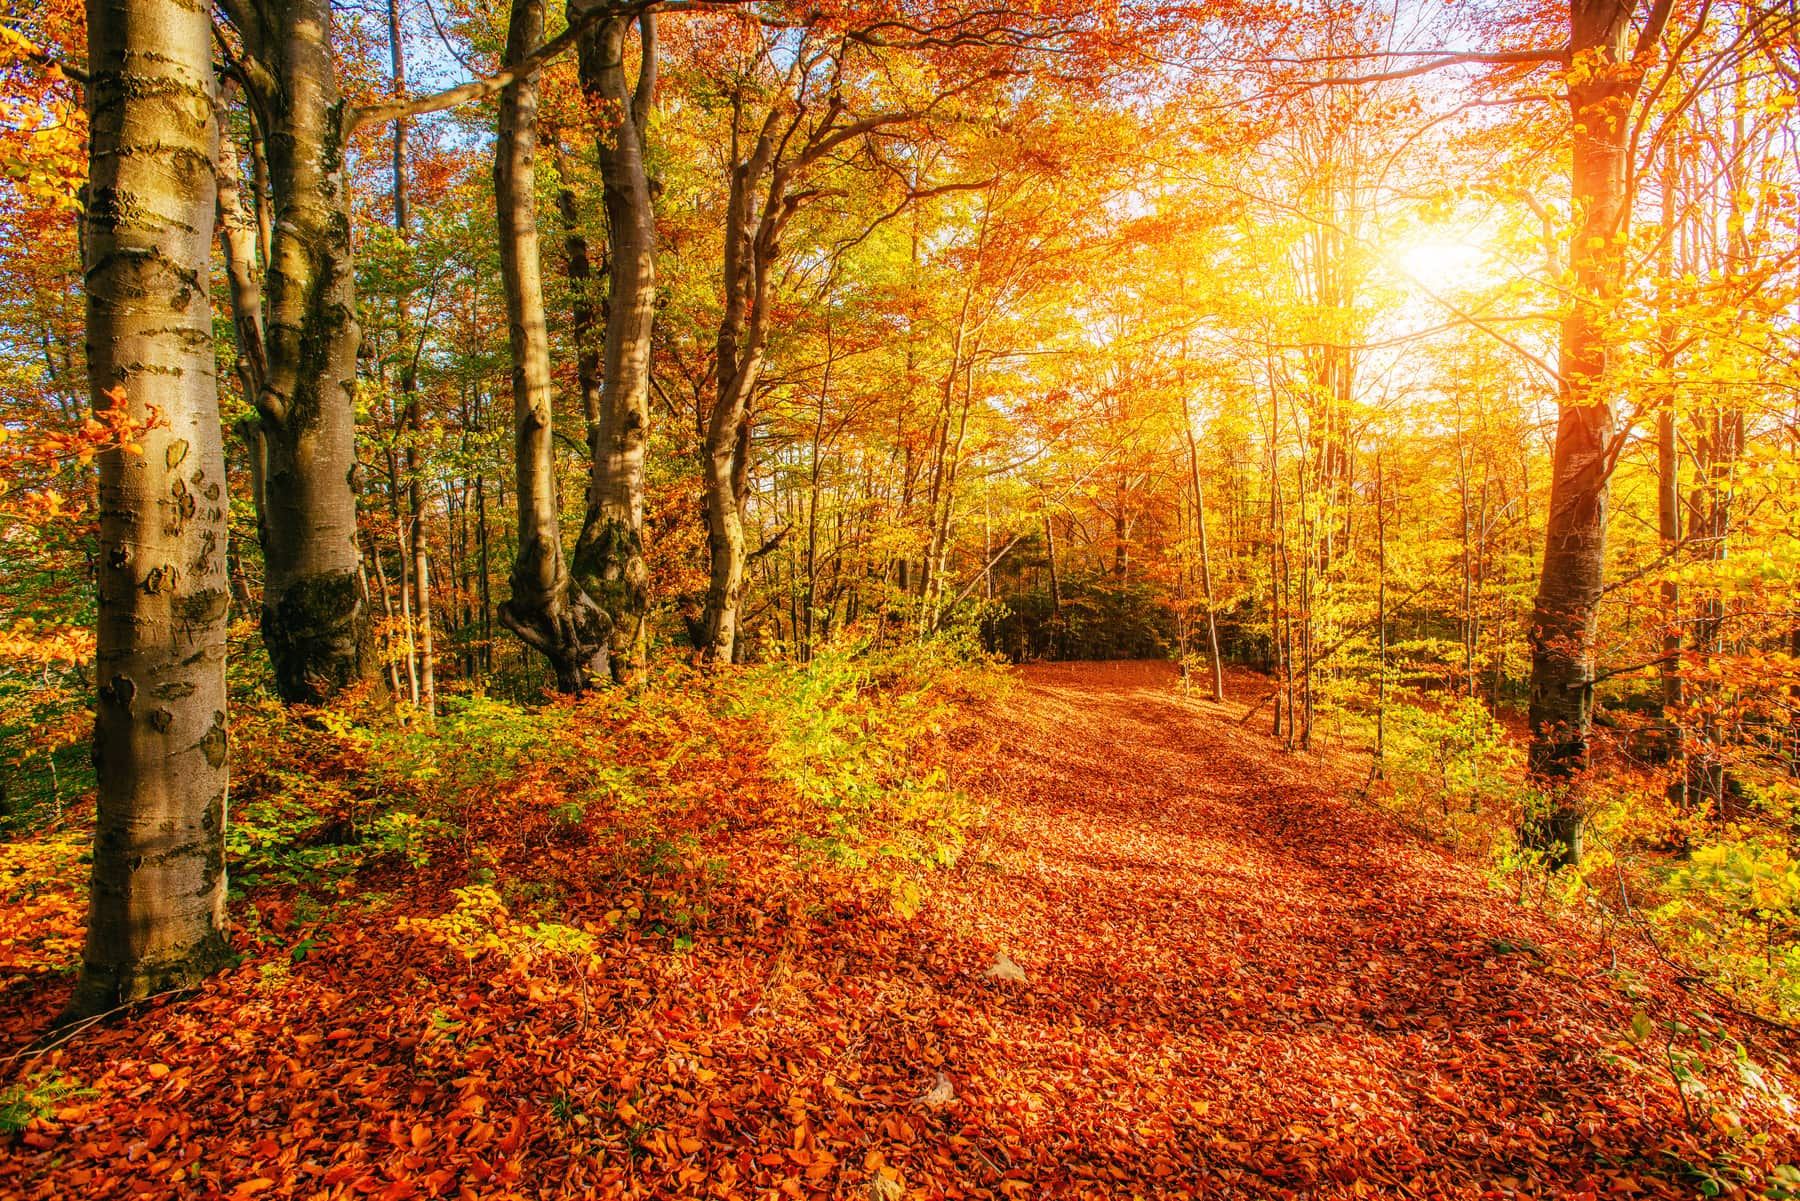 Forest Road in the autumn. Beauty world. Landscape